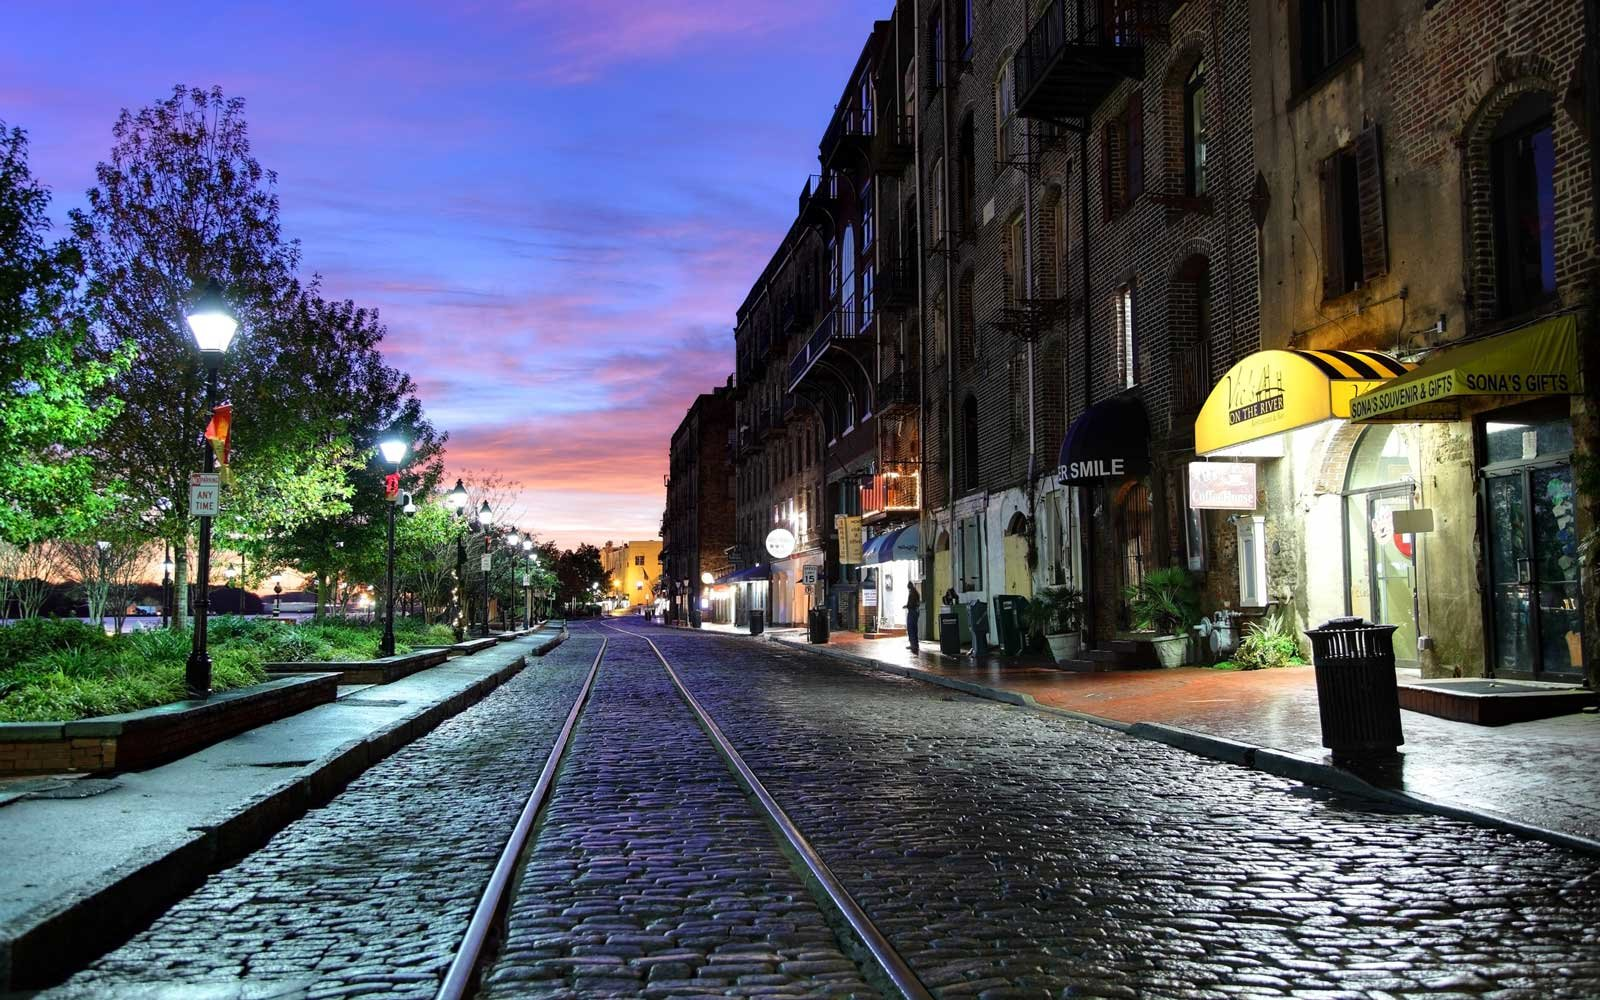 Early morning on the historic cobblestoned River Street lined with pubs and restaurants.